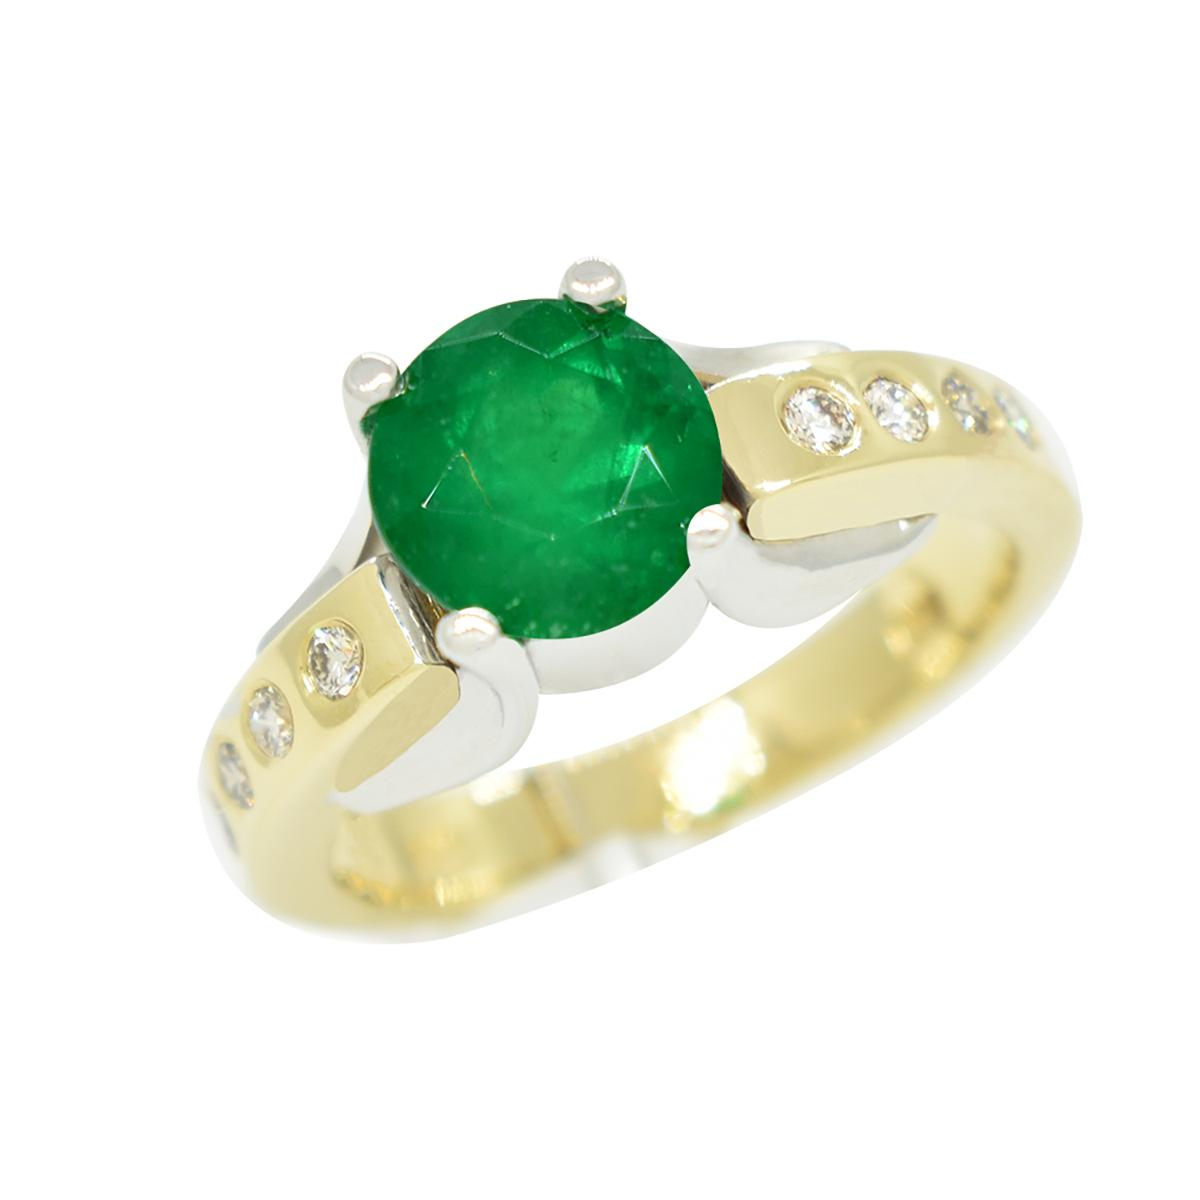 emerald-ring-in-14k-gold-two-tone-ring-and-diamond-accents